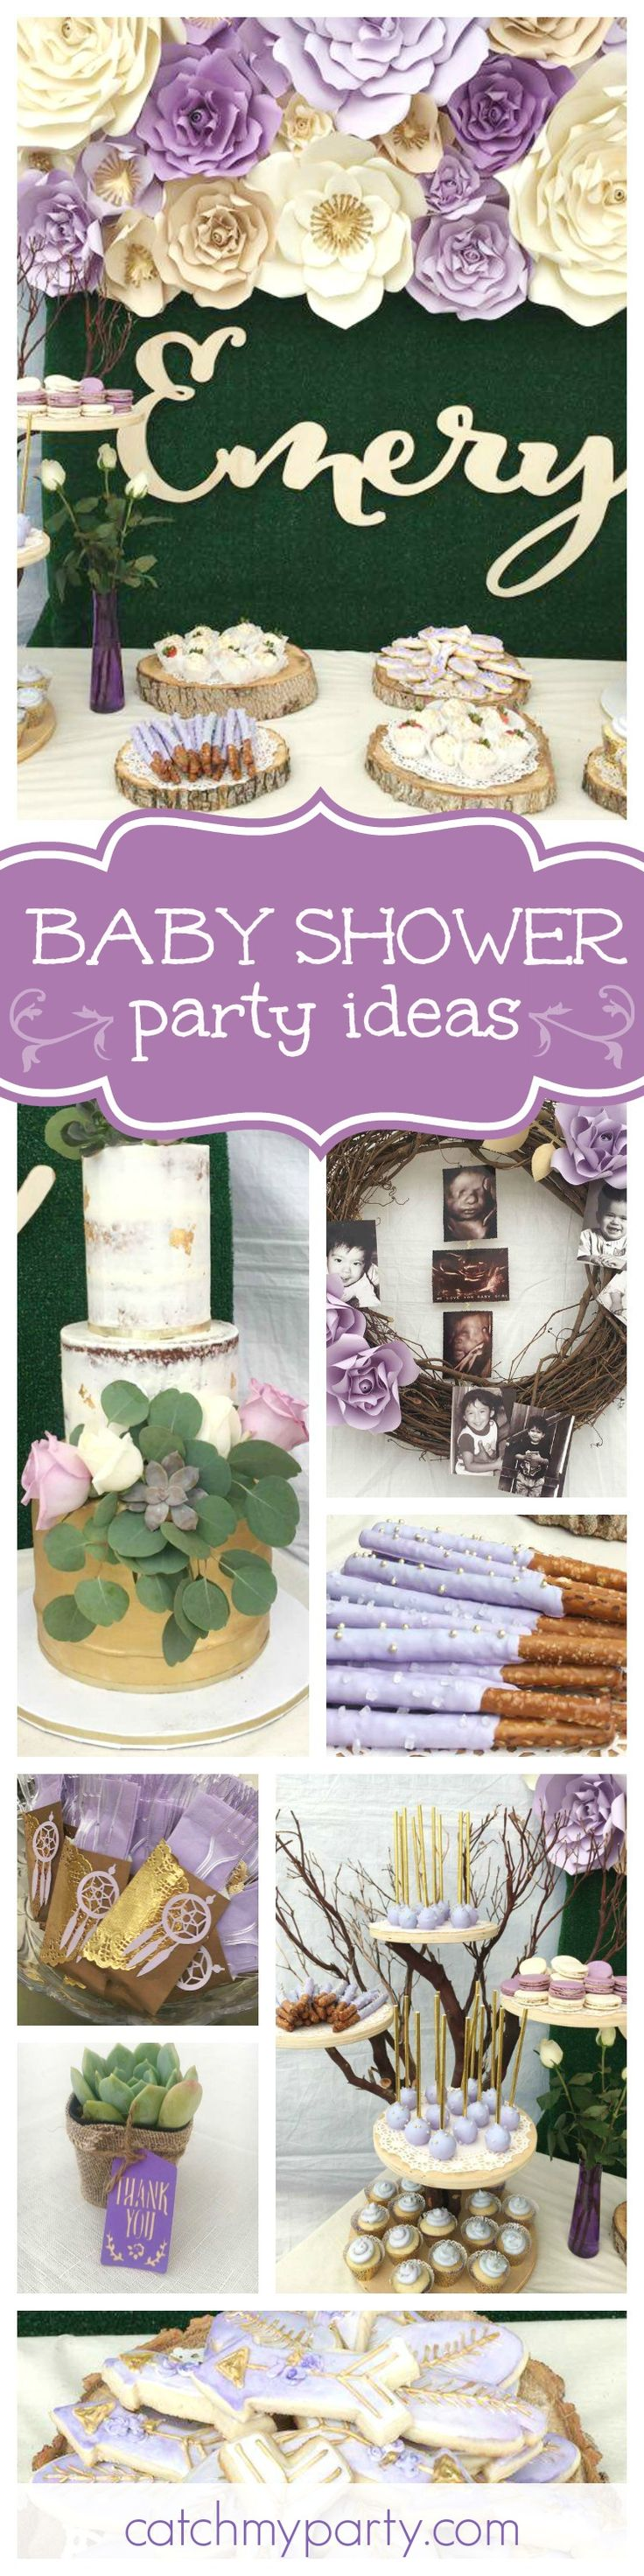 You'll love this pretty rustic boho baby shower! The backdrop is gorgeous & the desserts are so beautifully presented! See more party ideas and share yours at CatchMyParty.com